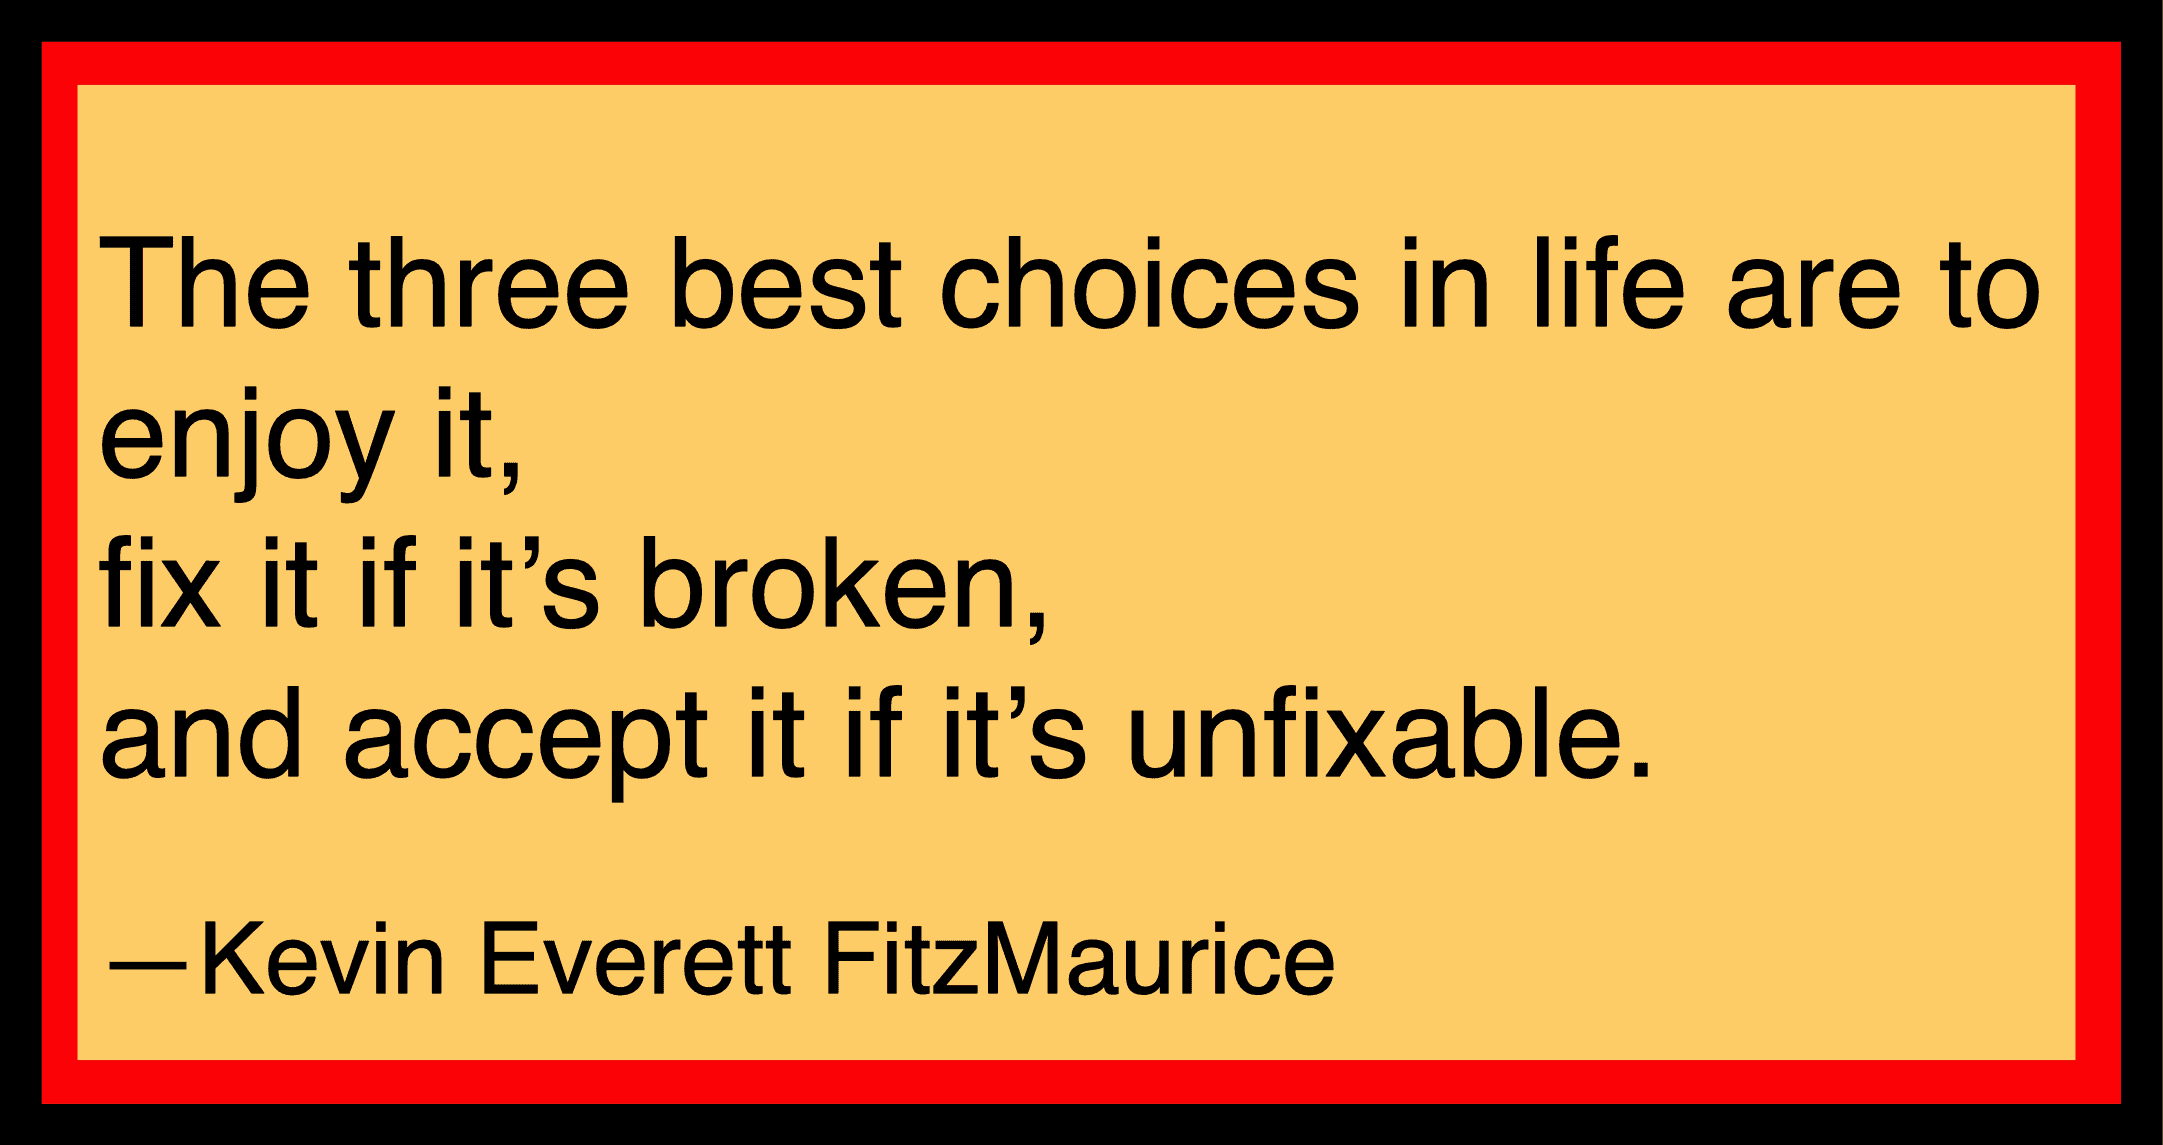 The three best choices in life.